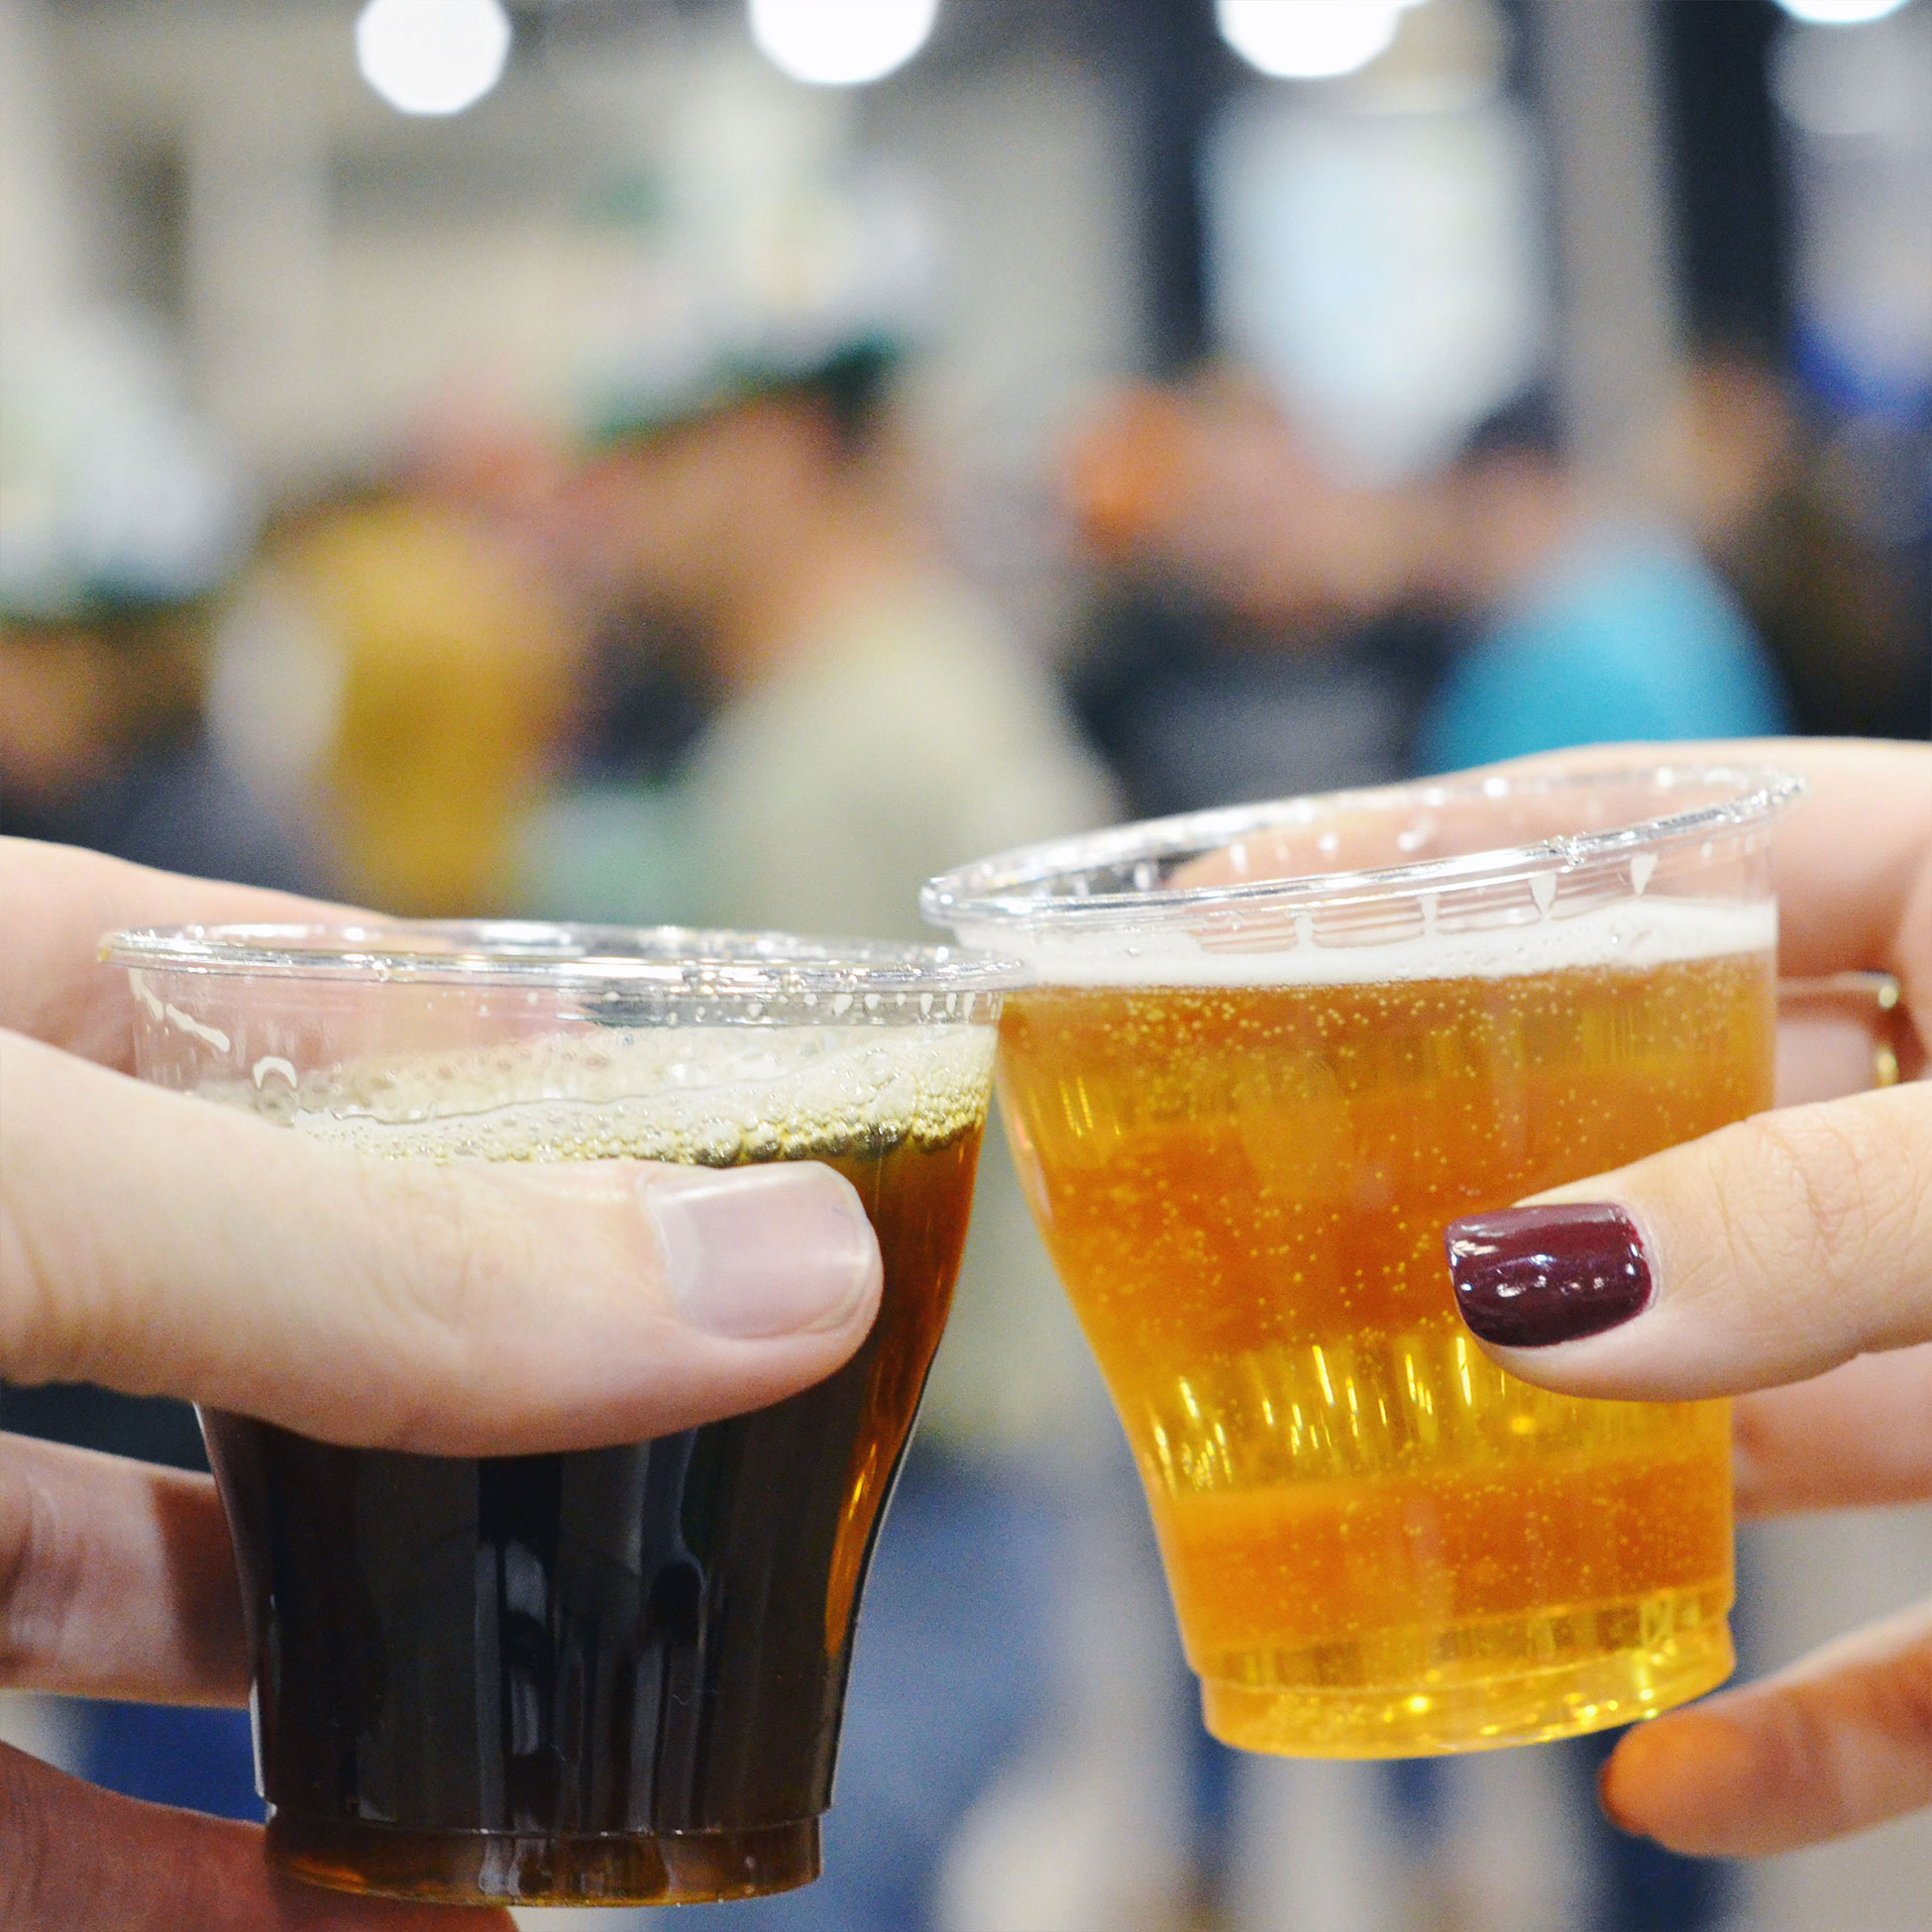 free-beer-image-creative-commons-commercial-use-cheers-oktoberfest-beerfest